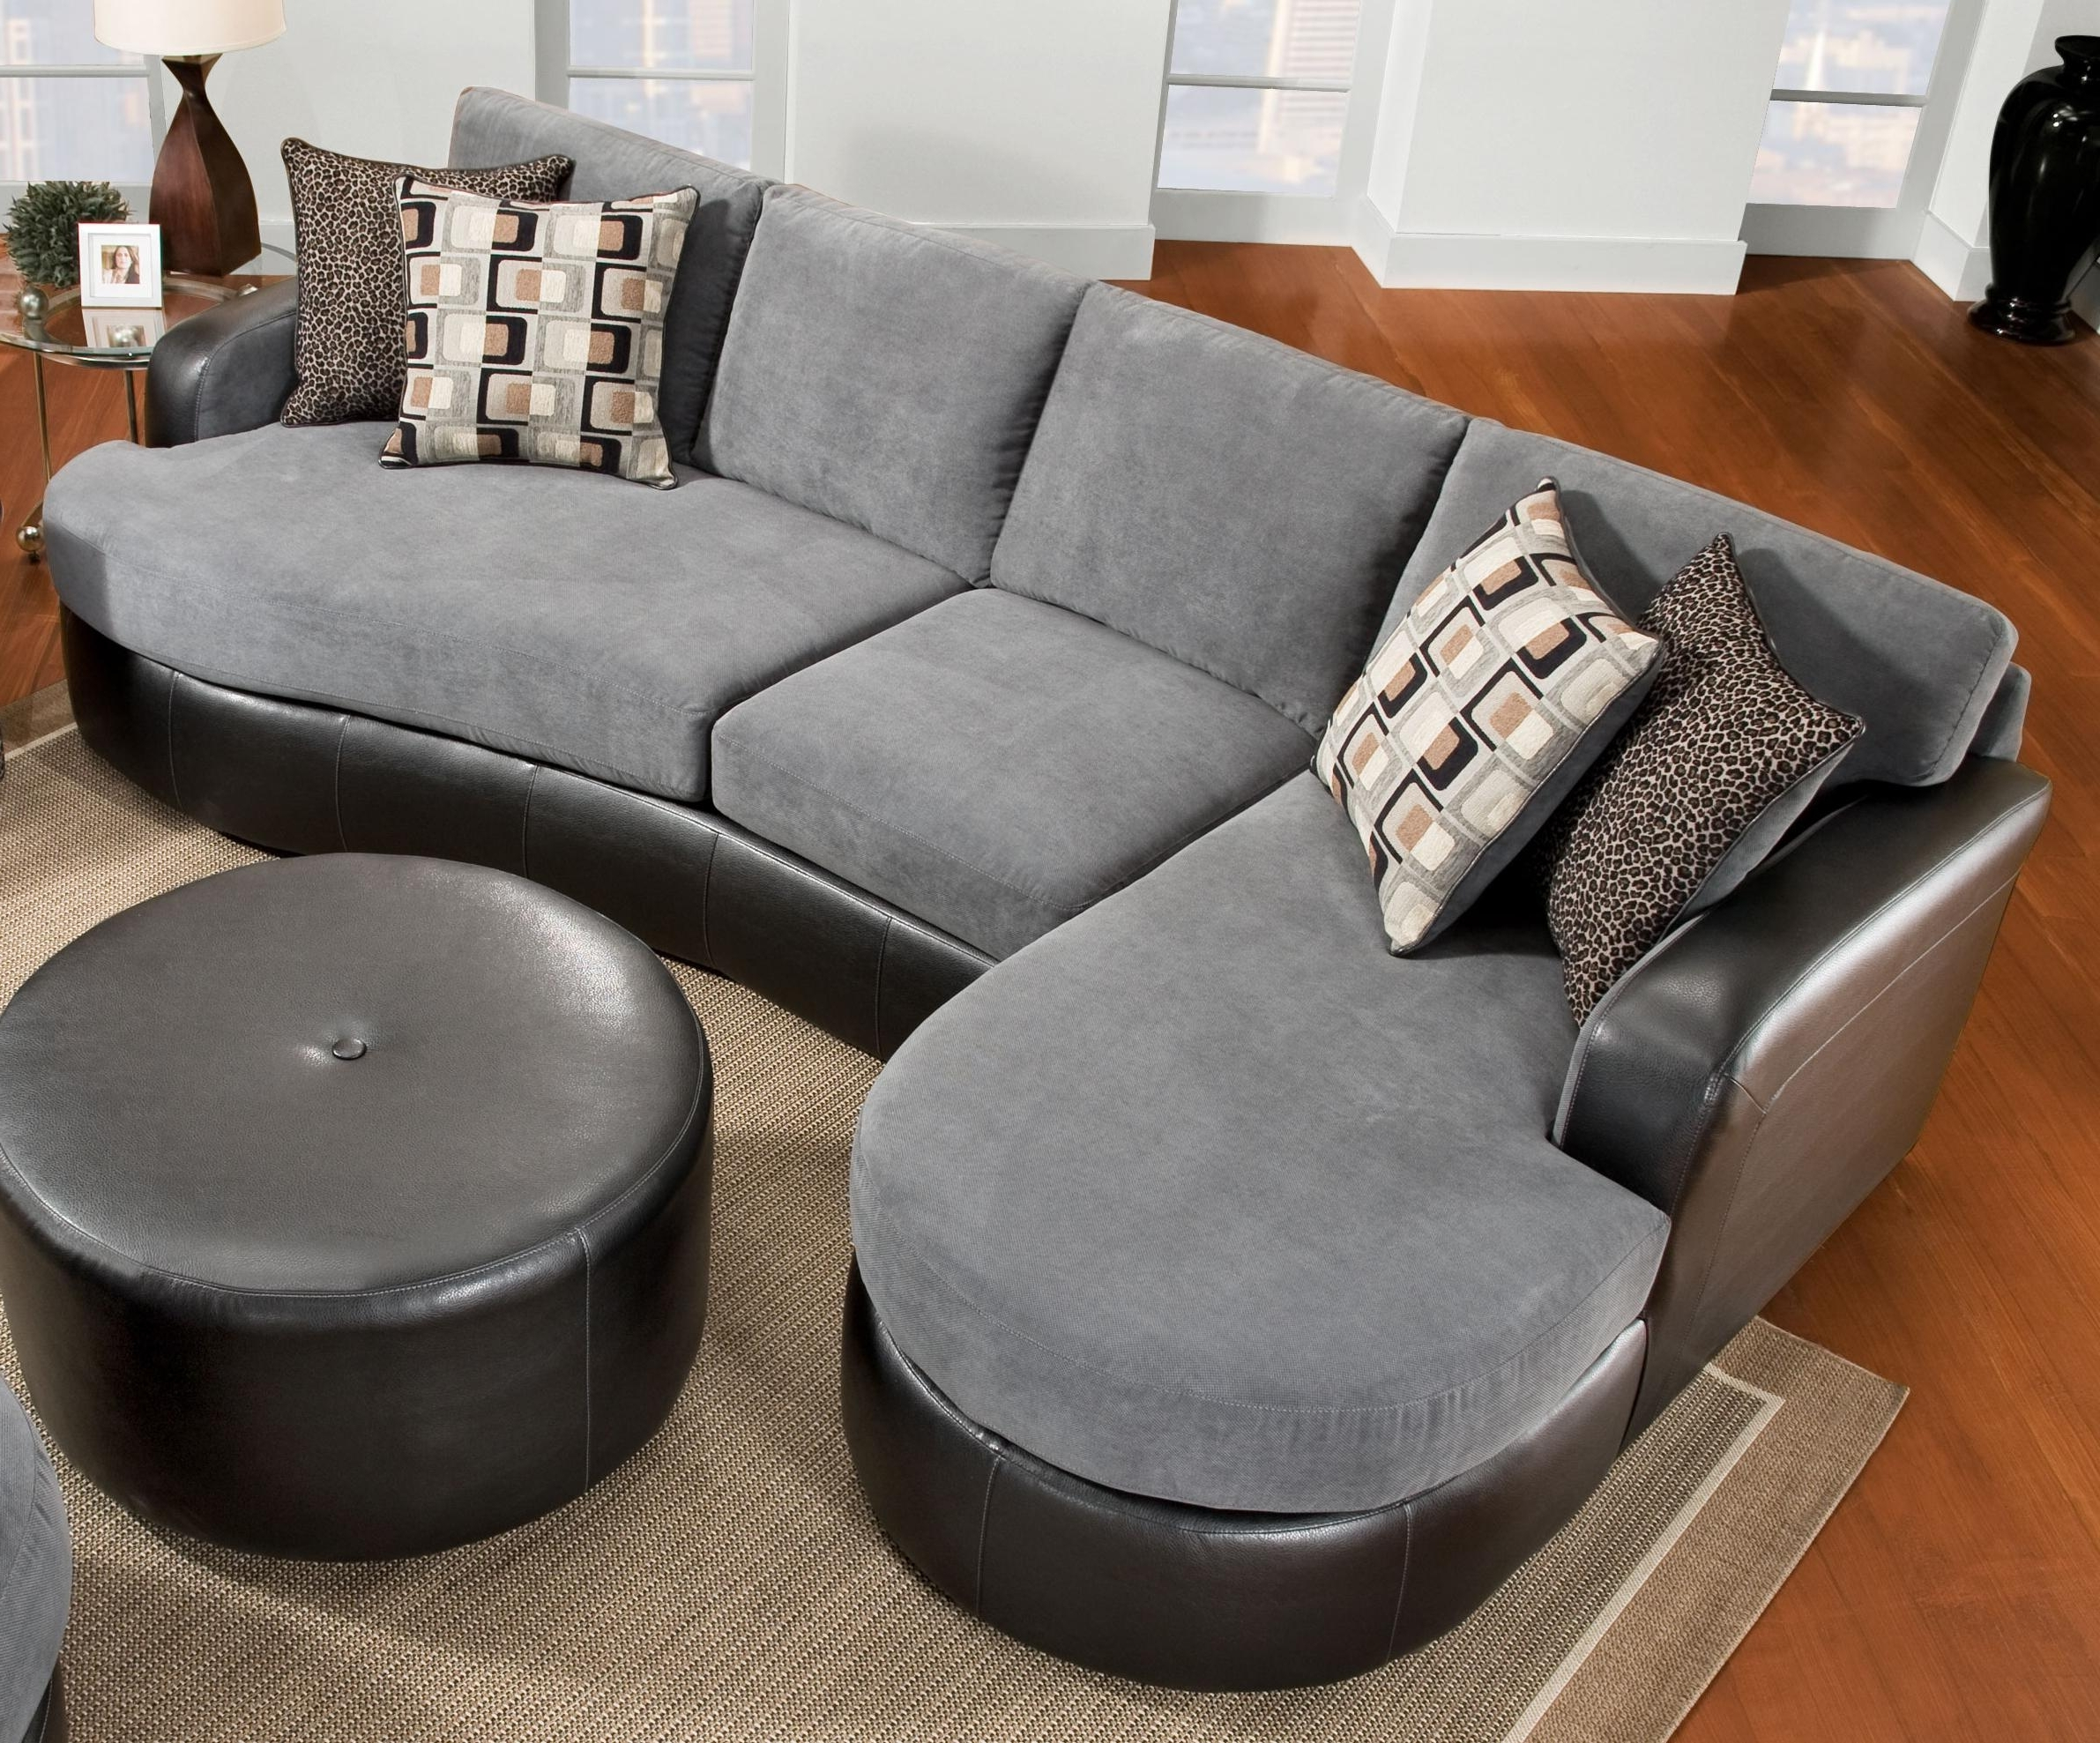 Latest Home Design : Dazzling Best Modern Fabric Sectional Sofas With With Regard To Black Leather Sectionals With Ottoman (View 10 of 20)